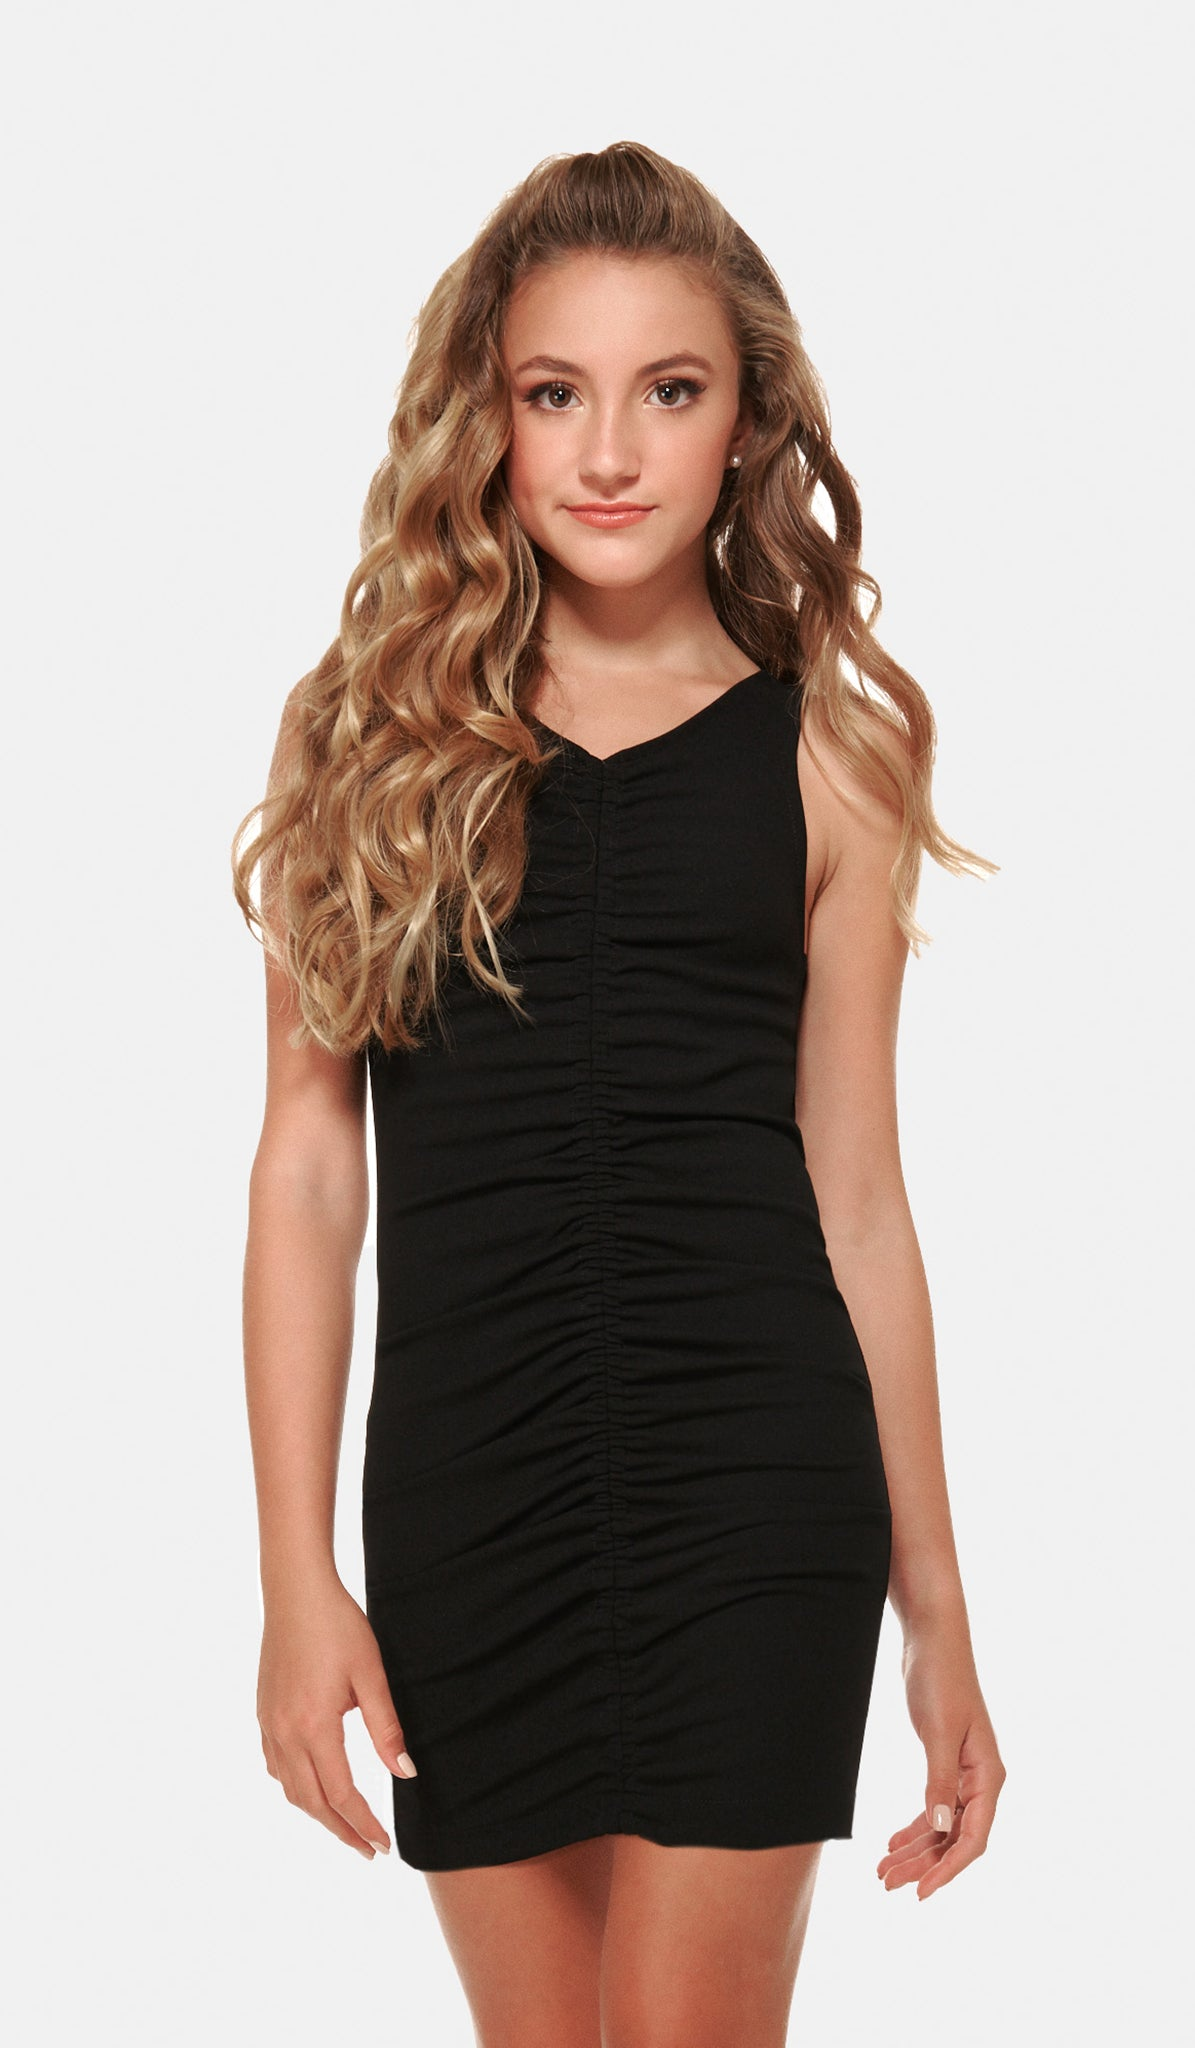 The Sally Miller Deb Dress - Black stretch crepe georgette body con dress with center front rouching